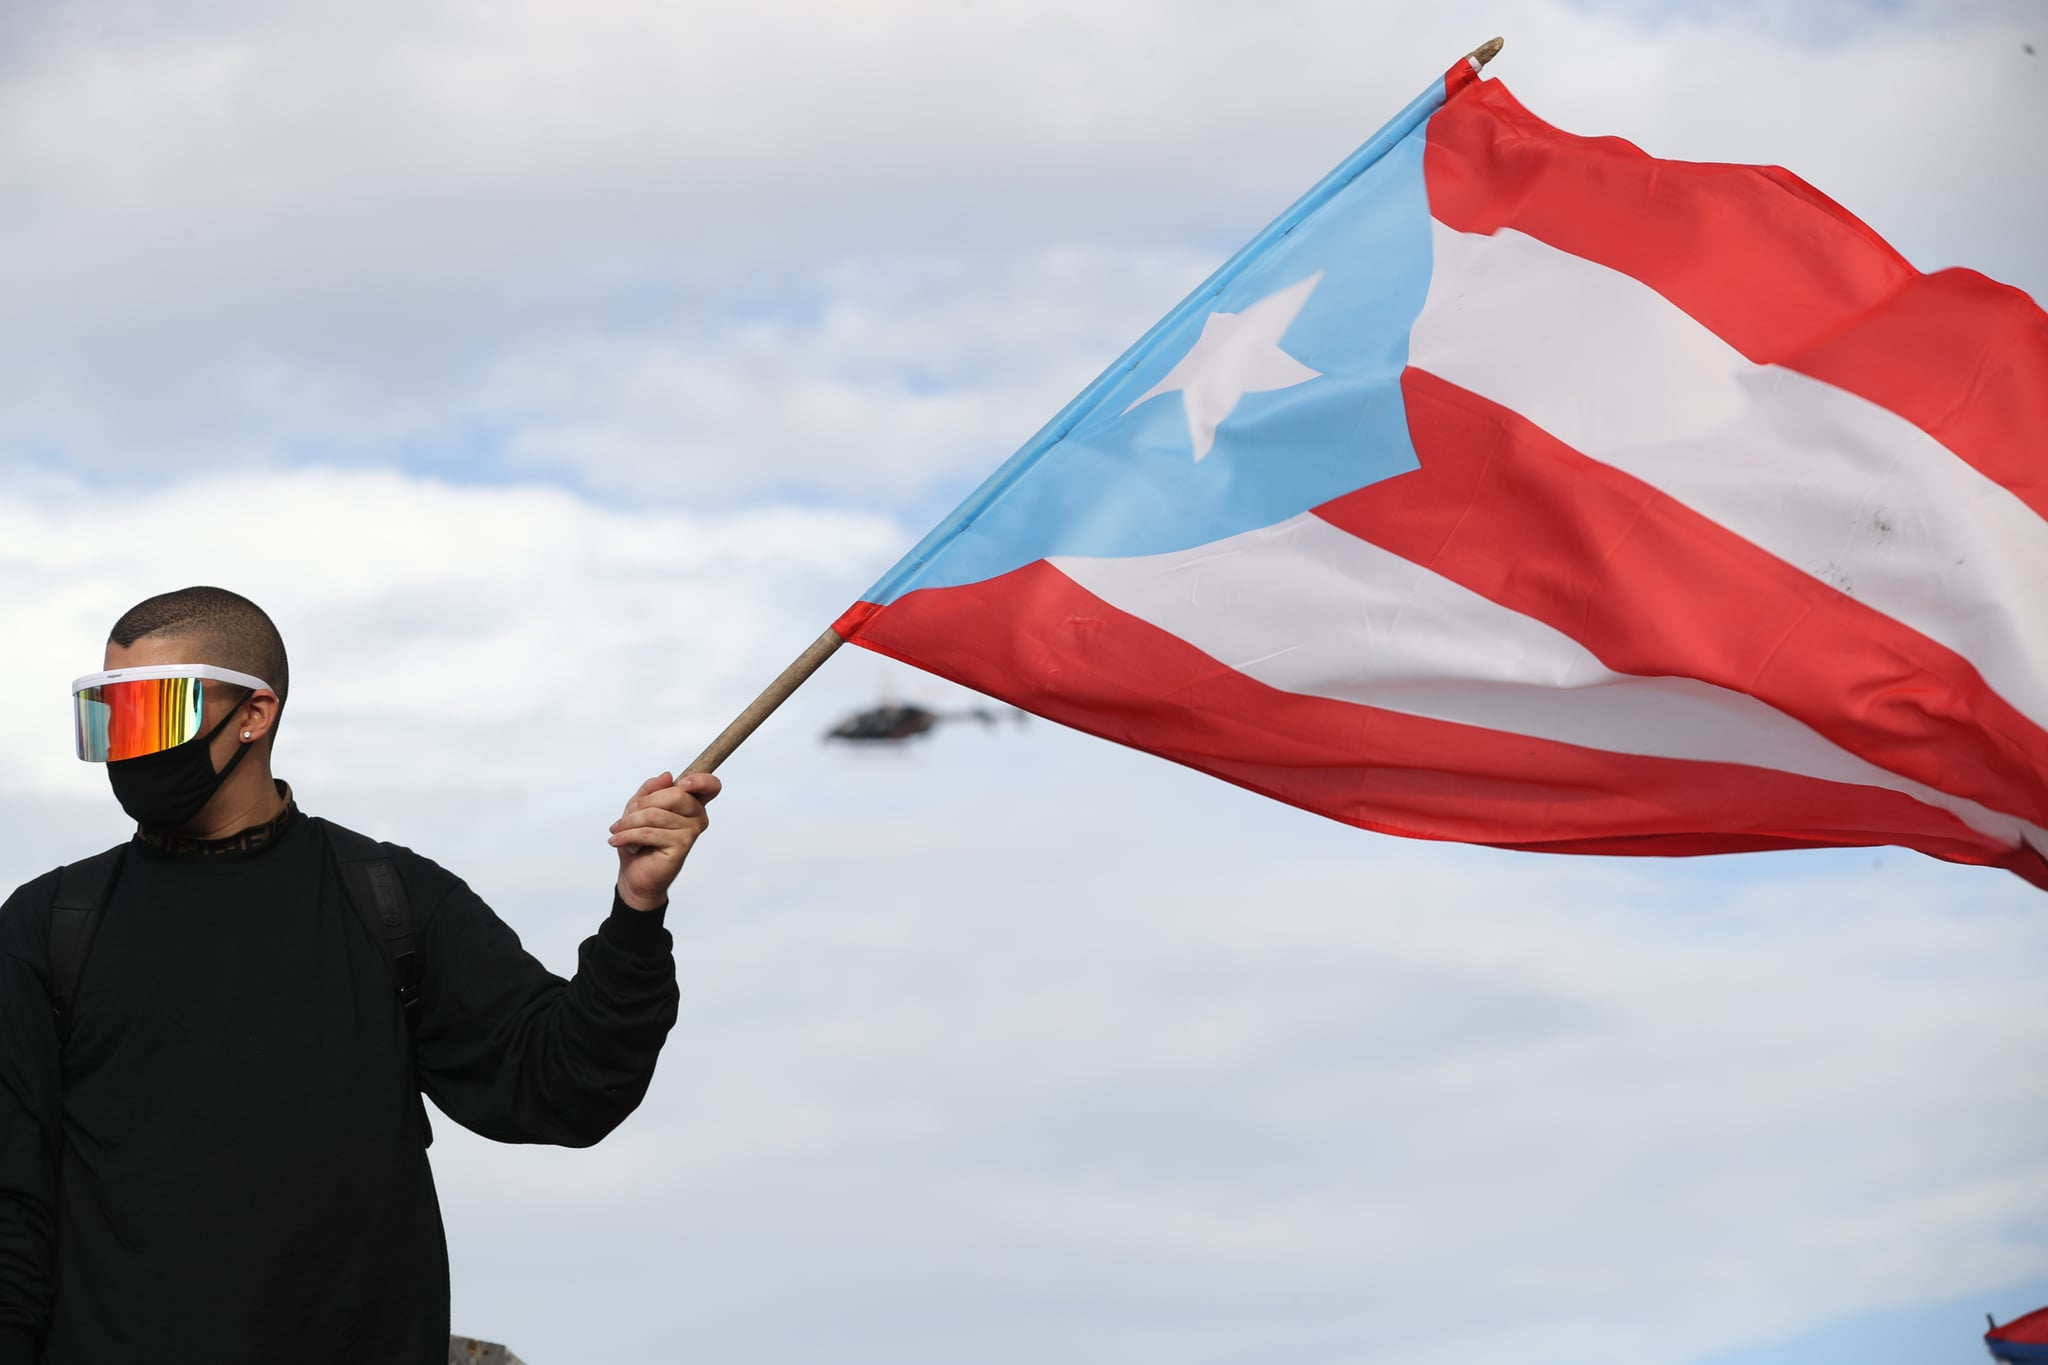 OLD SAN JUAN, PUERTO RICO - JULY 17: Reggaton singer and rapper Bad Bunny waves a Puerto Rican flag during protests against Ricardo Rossello, the Governor of Puerto Rico on July 17, 2019 in front of the Capitol Building in Old San Juan, Puerto Rico. There have been calls for the Governor to step down after it was revealed that he and top aides were part of a private chat group that contained misogynistic and homophobic messages. (Photo by Joe Raedle/Getty Images)